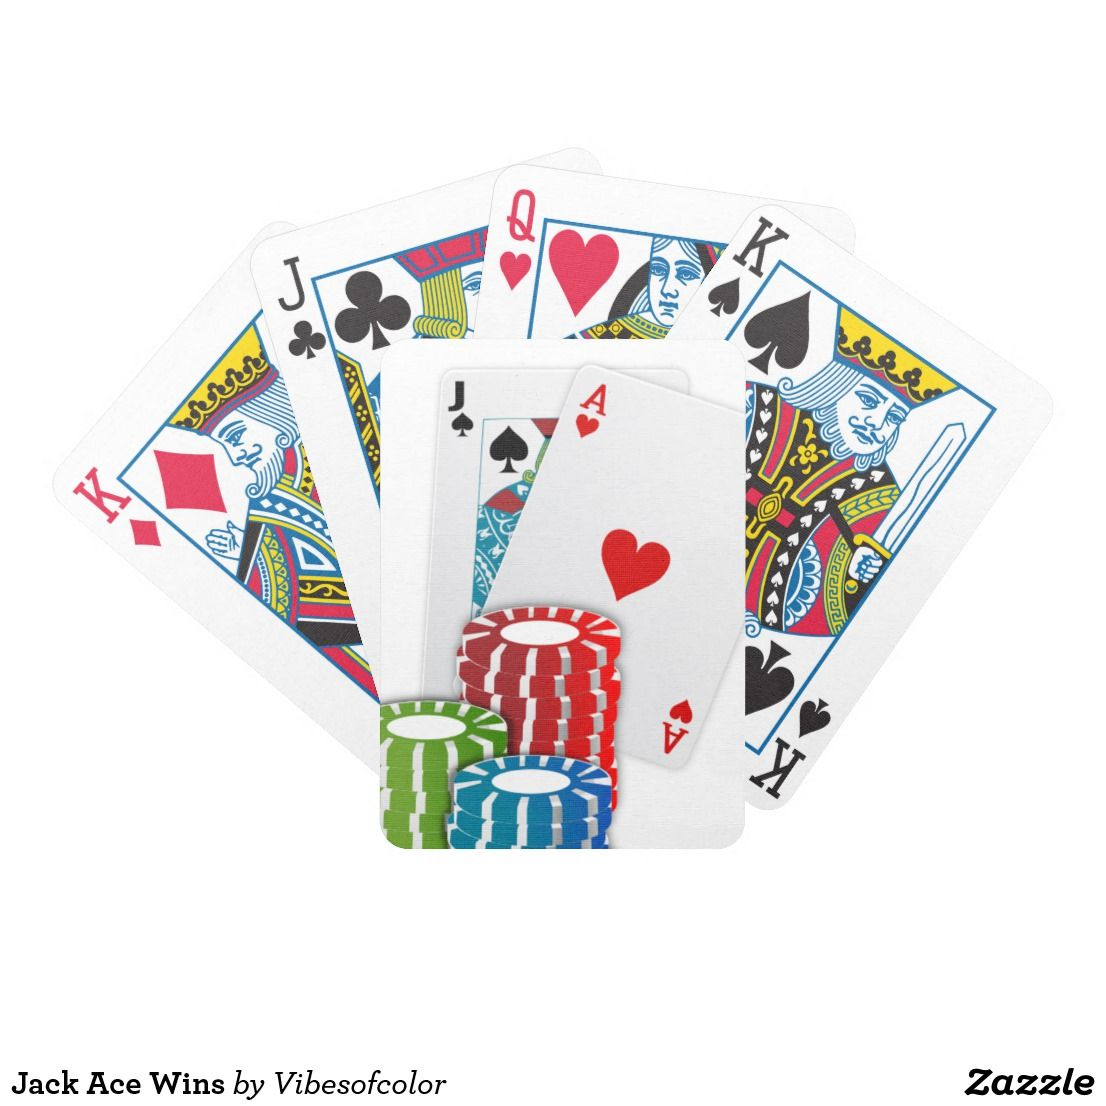 19++ Card games to play alone 1 deck ideas in 2021